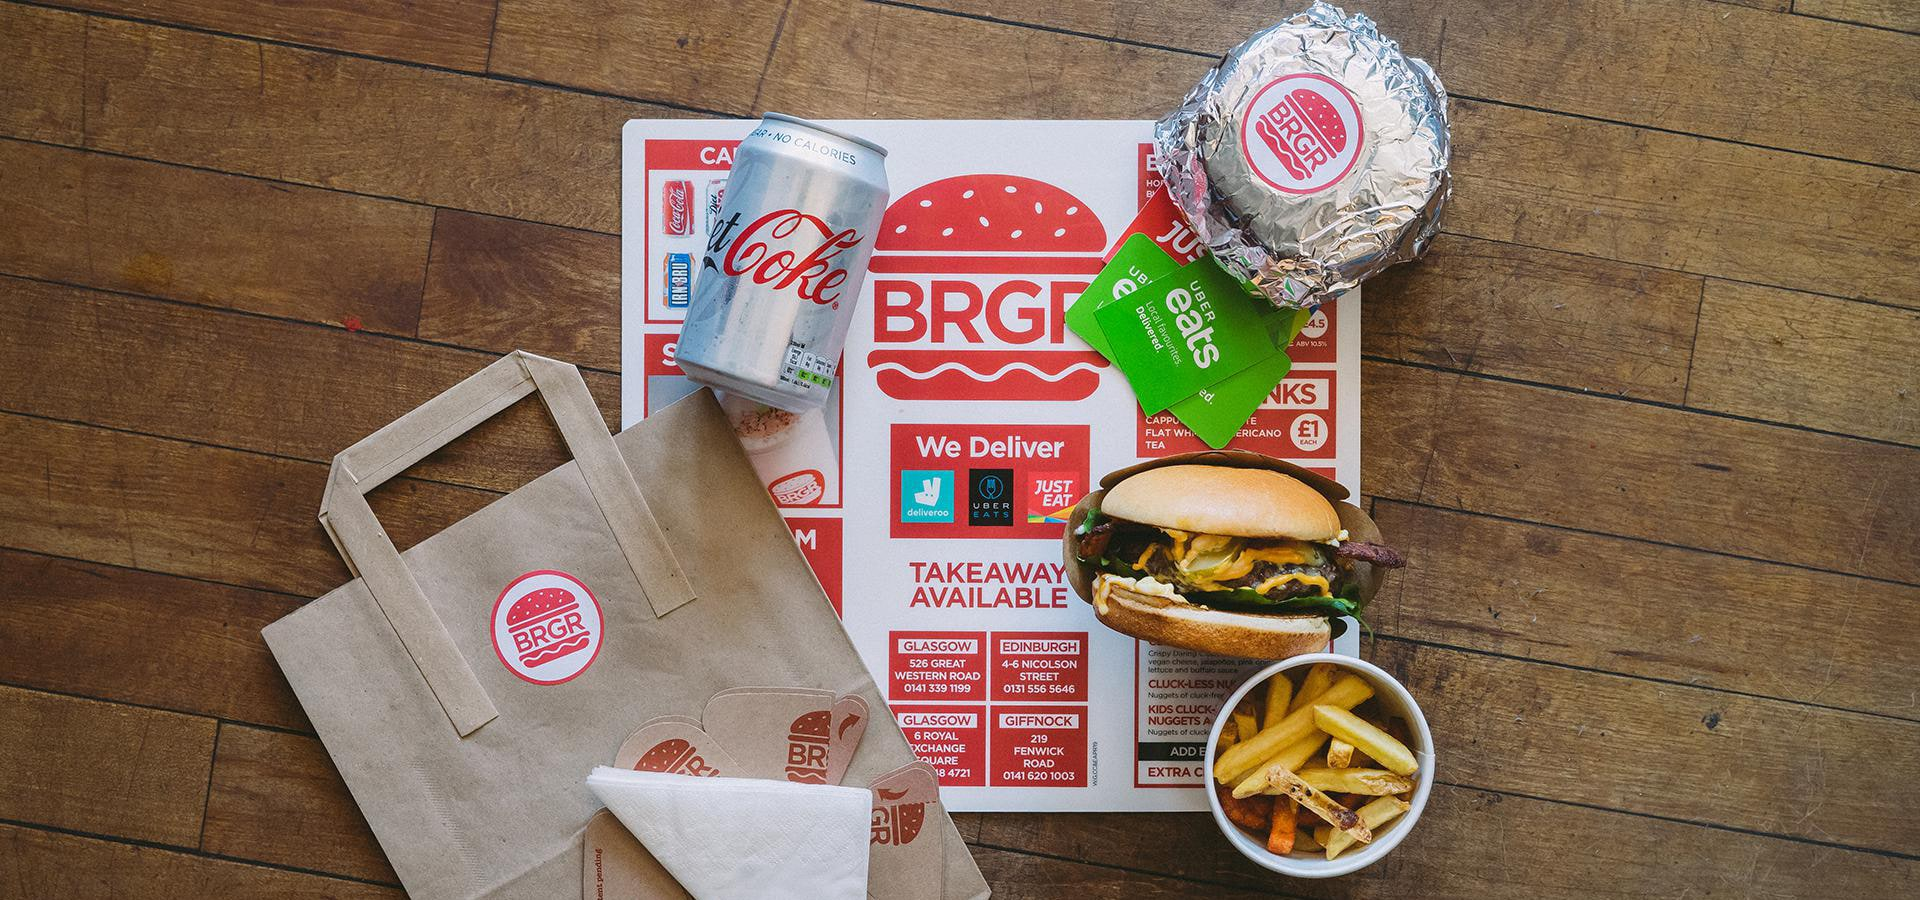 BRGR Glasgow Branding photo showing Menu Design